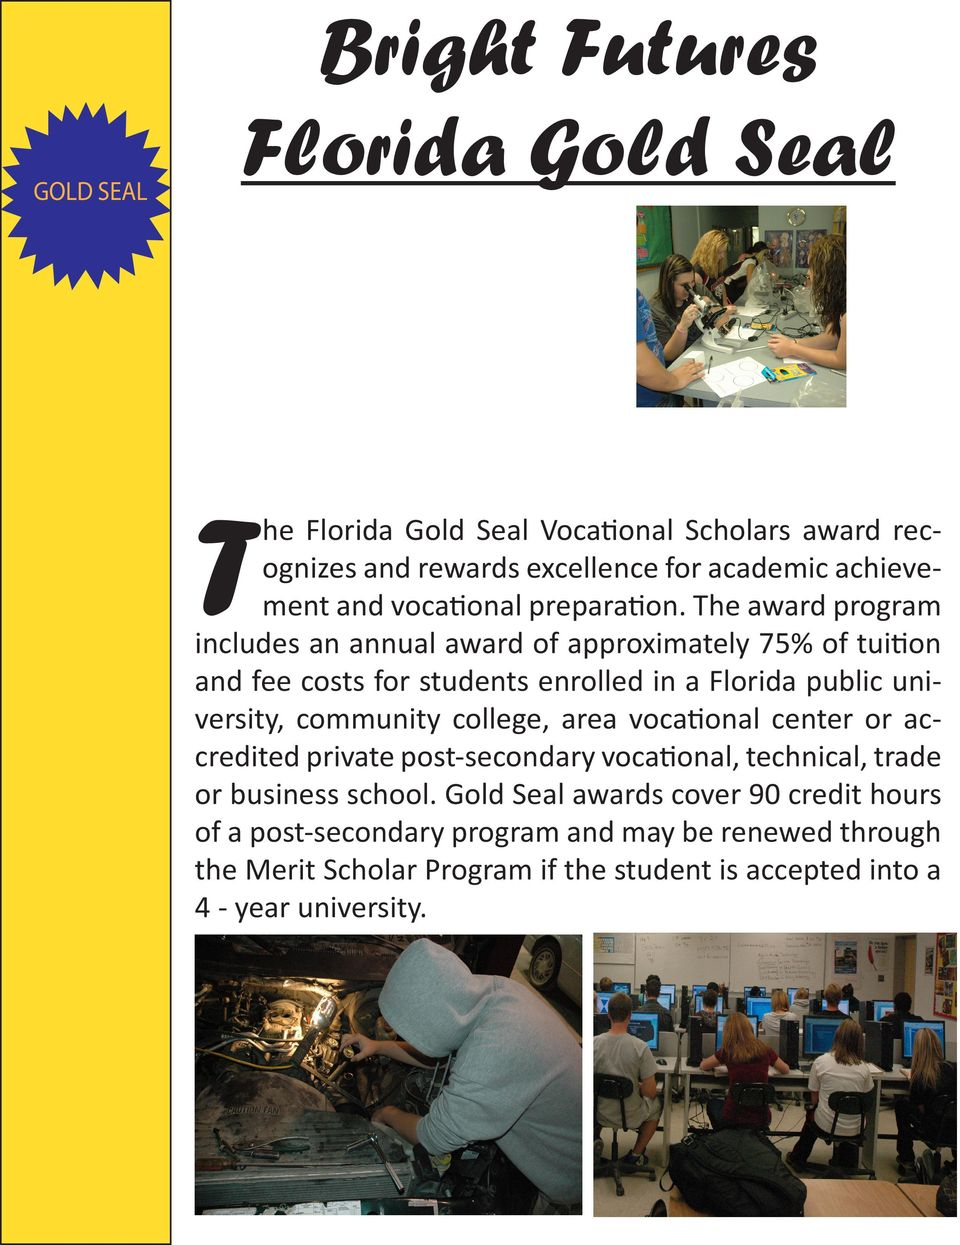 The award program includes an annual award of approximately 75% of tuition and fee costs for students enrolled in a Florida public university, community